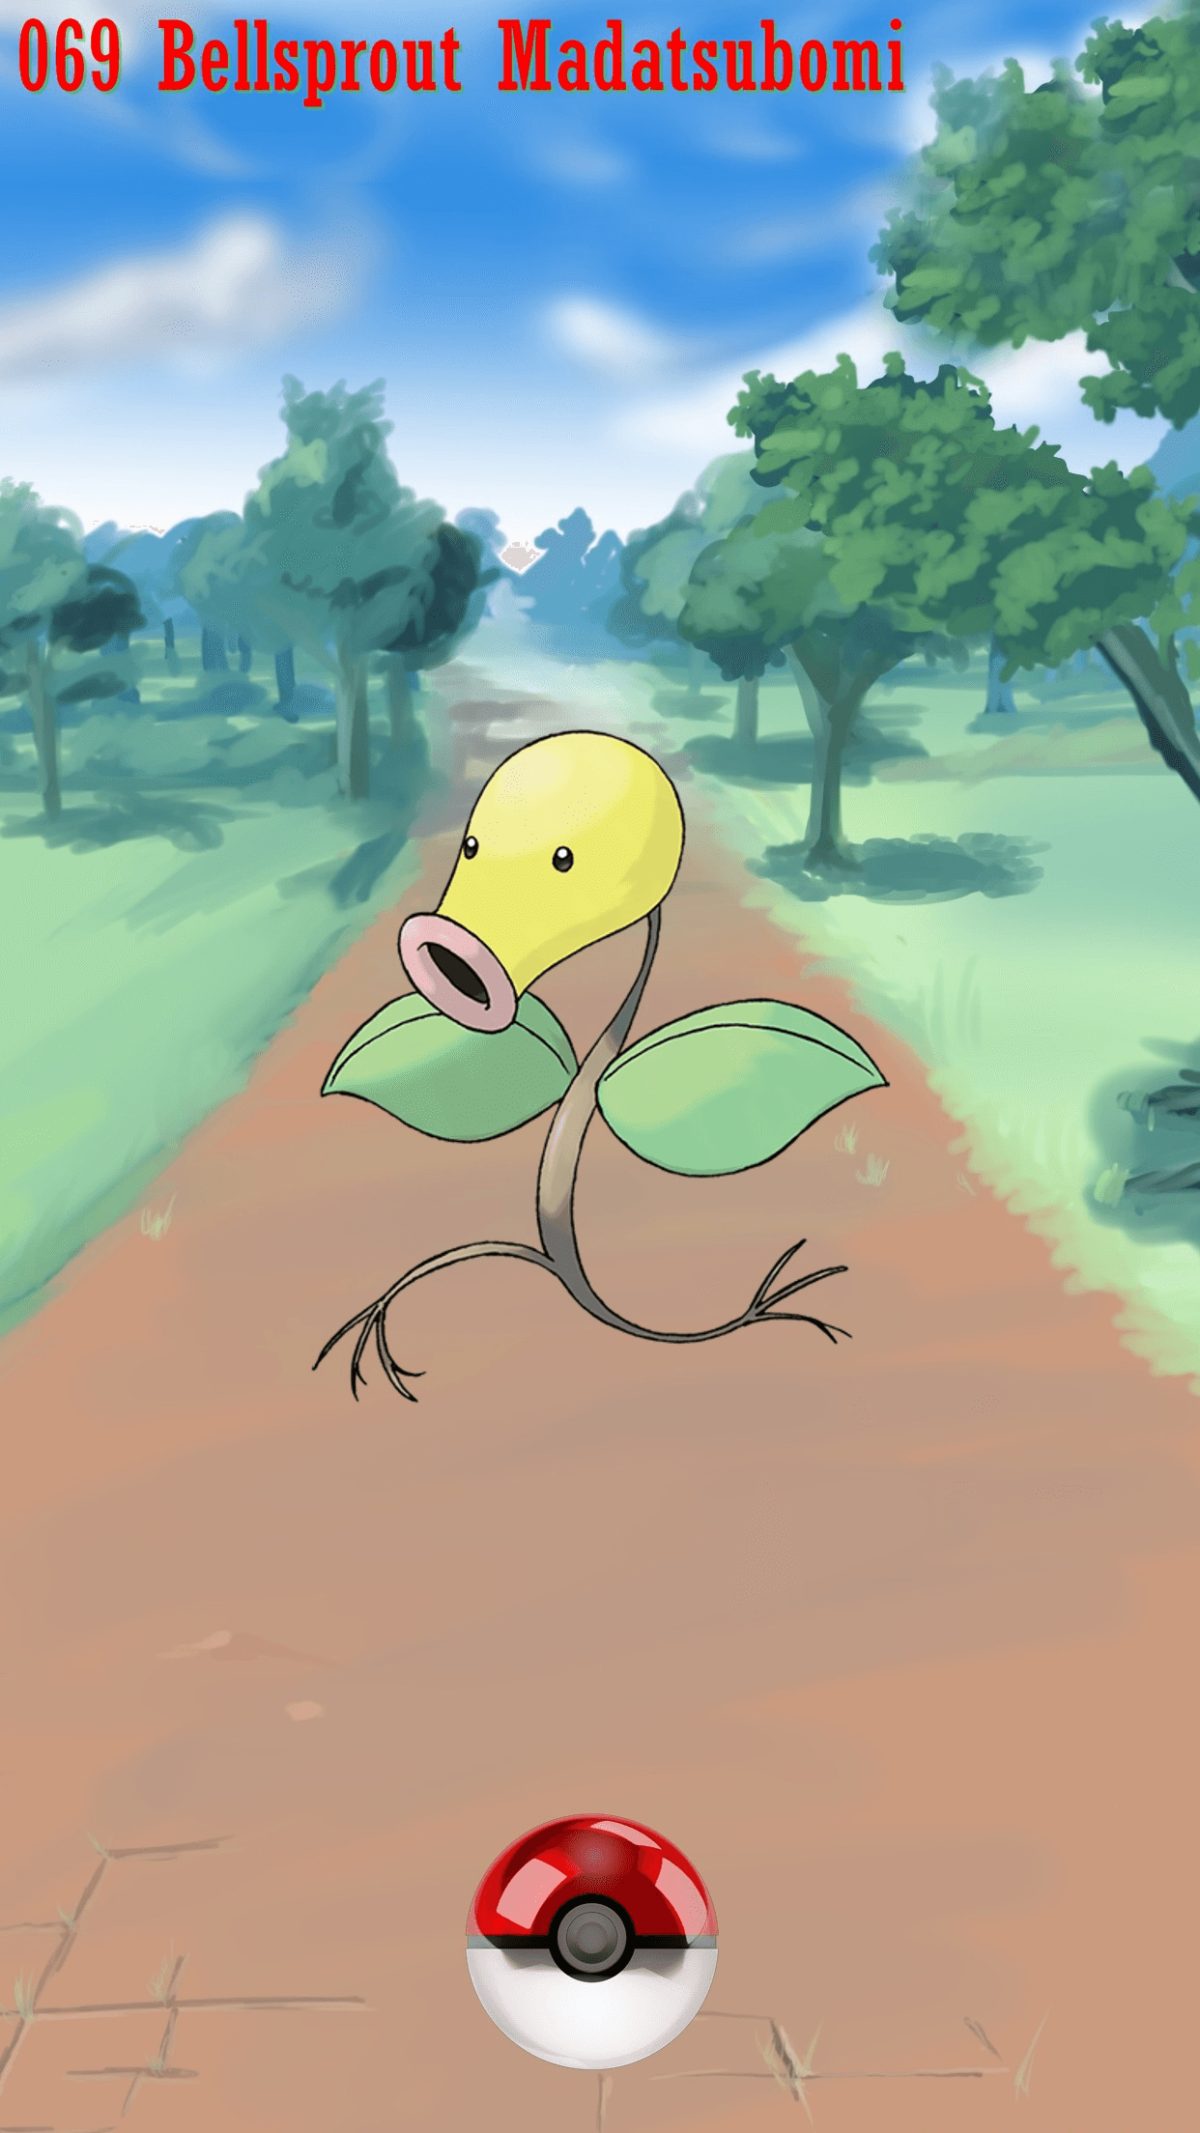 069 Street Pokeball Bellsprout Madatsubomi | Wallpaper